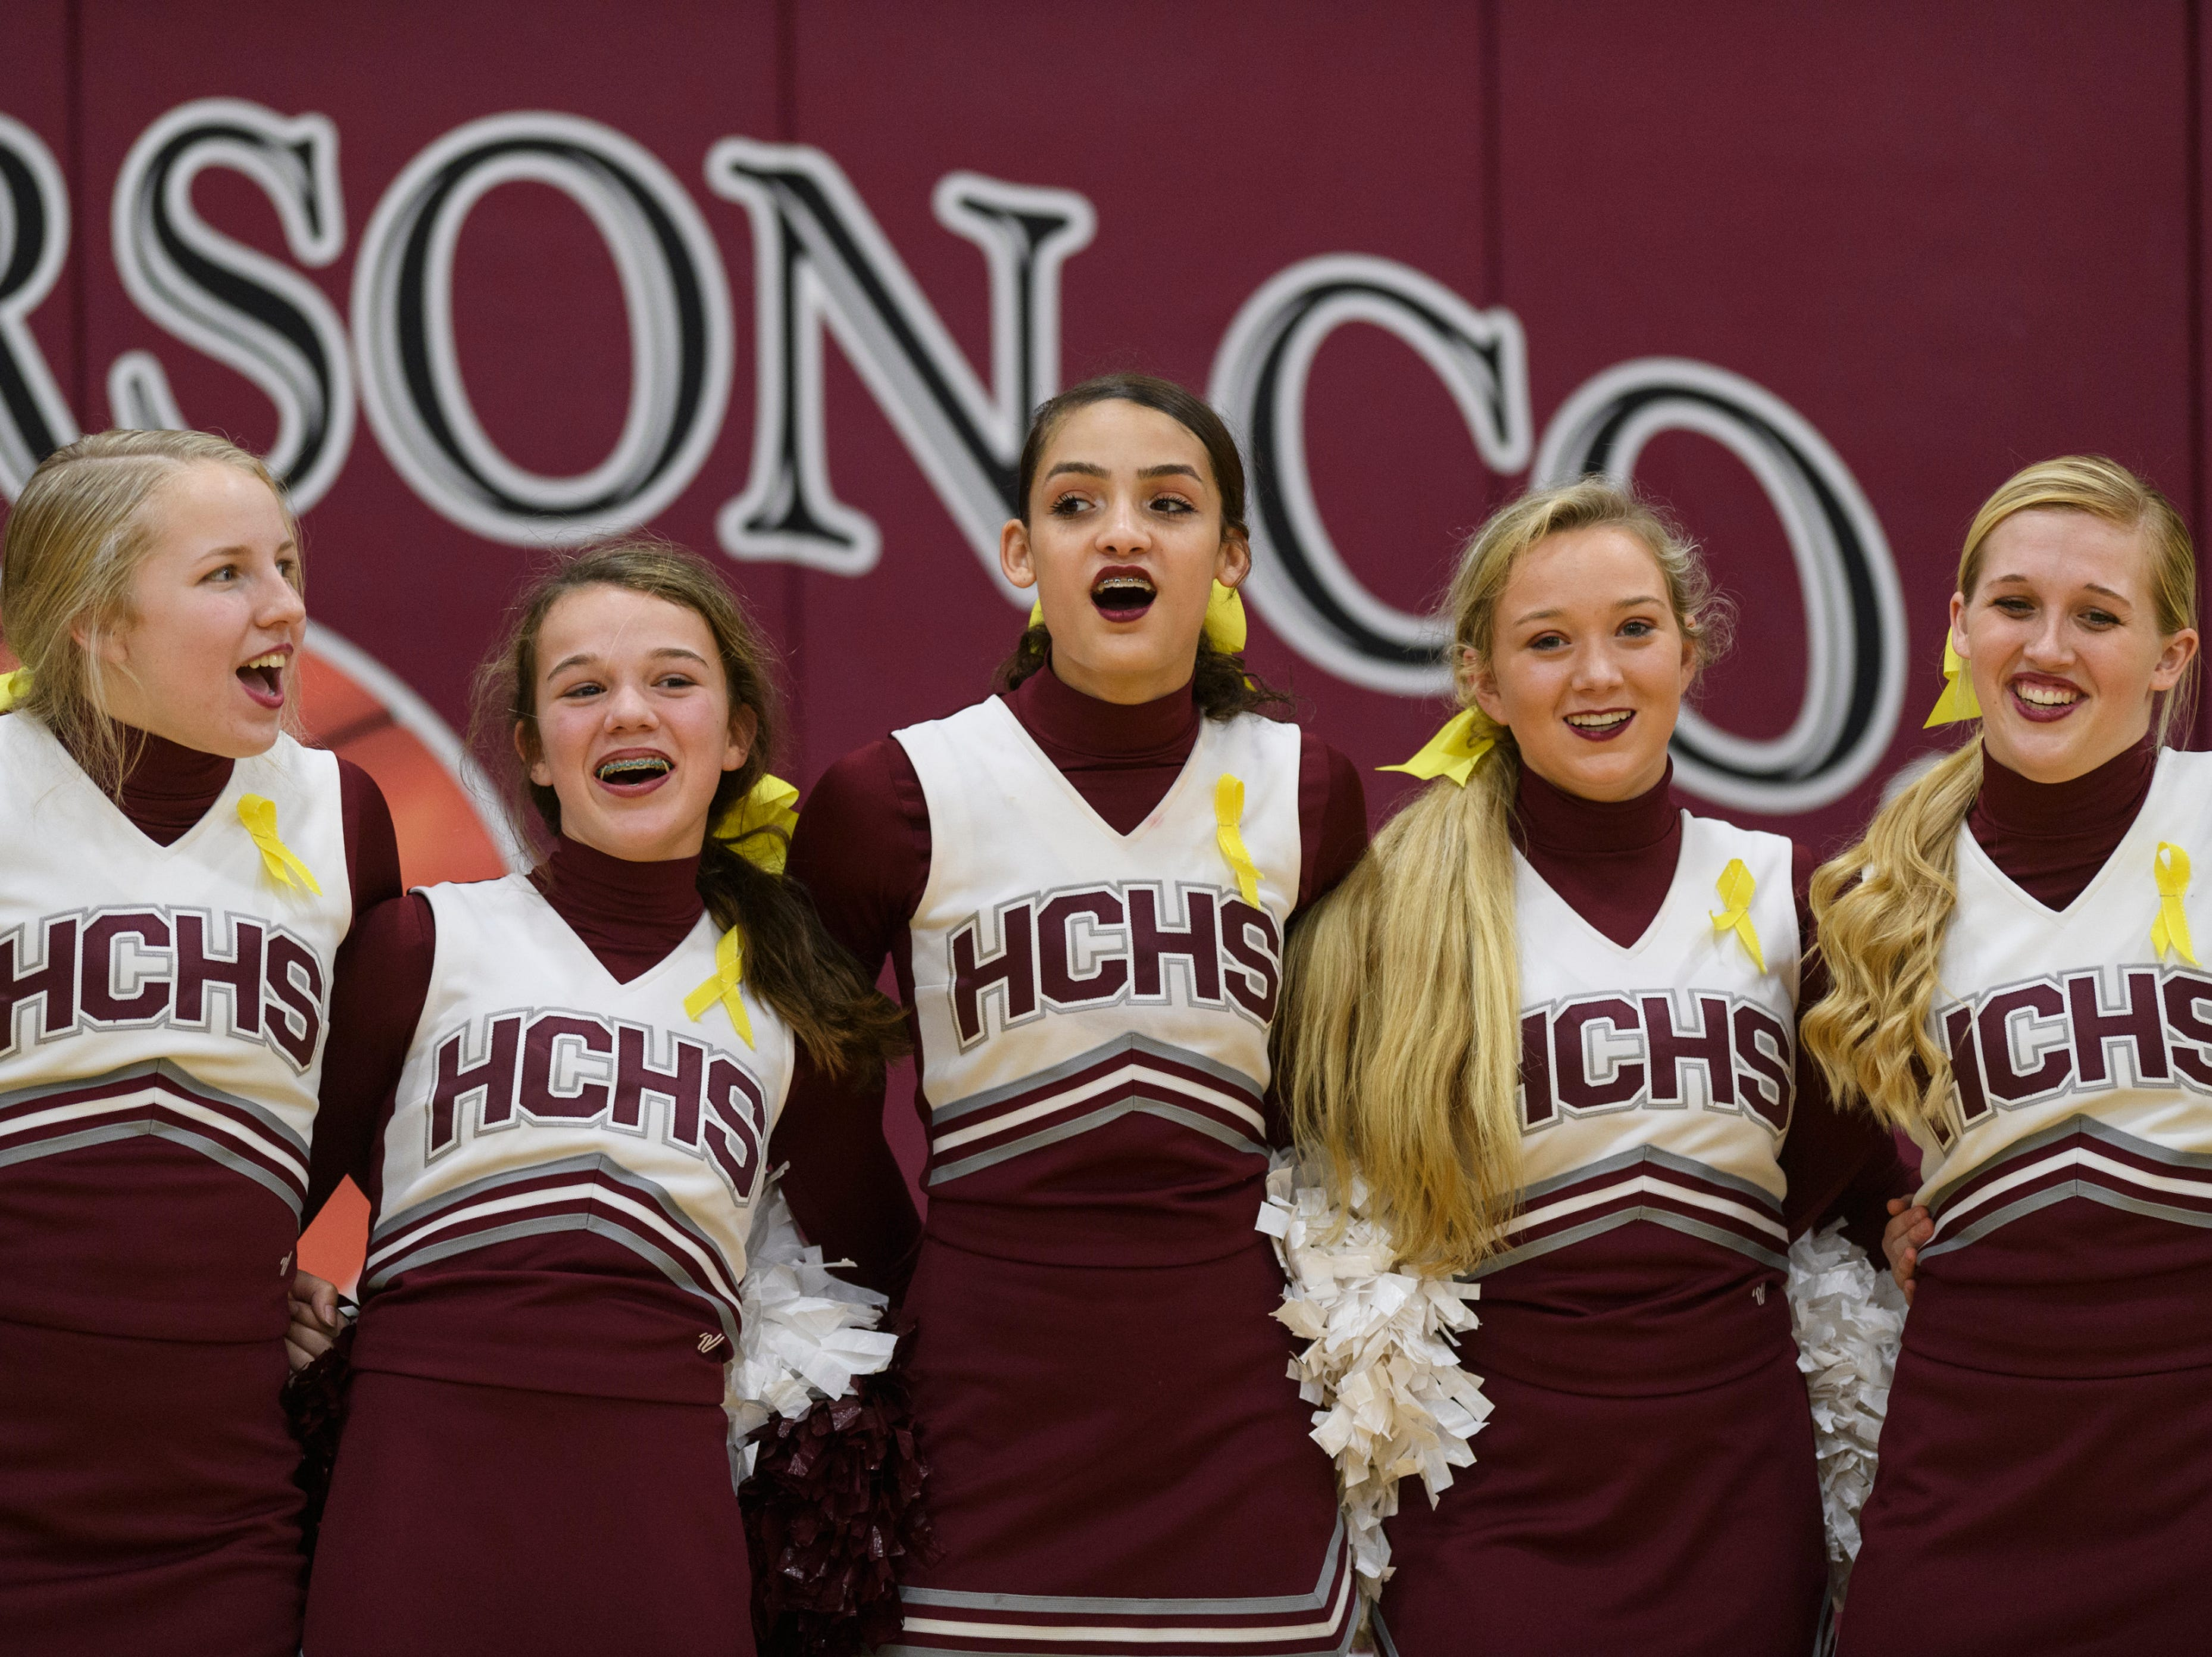 "Members of the Henderson County Cheerleading team sing  along to the song ""My Old Kentucky Home"" as it plays at the end of the Christian County Colonels vs Henderson County basketball game at Henderson County High School in Henderson, Ky., Friday, Dec. 14, 2018. Christian County defeated Henderson County 79-71."